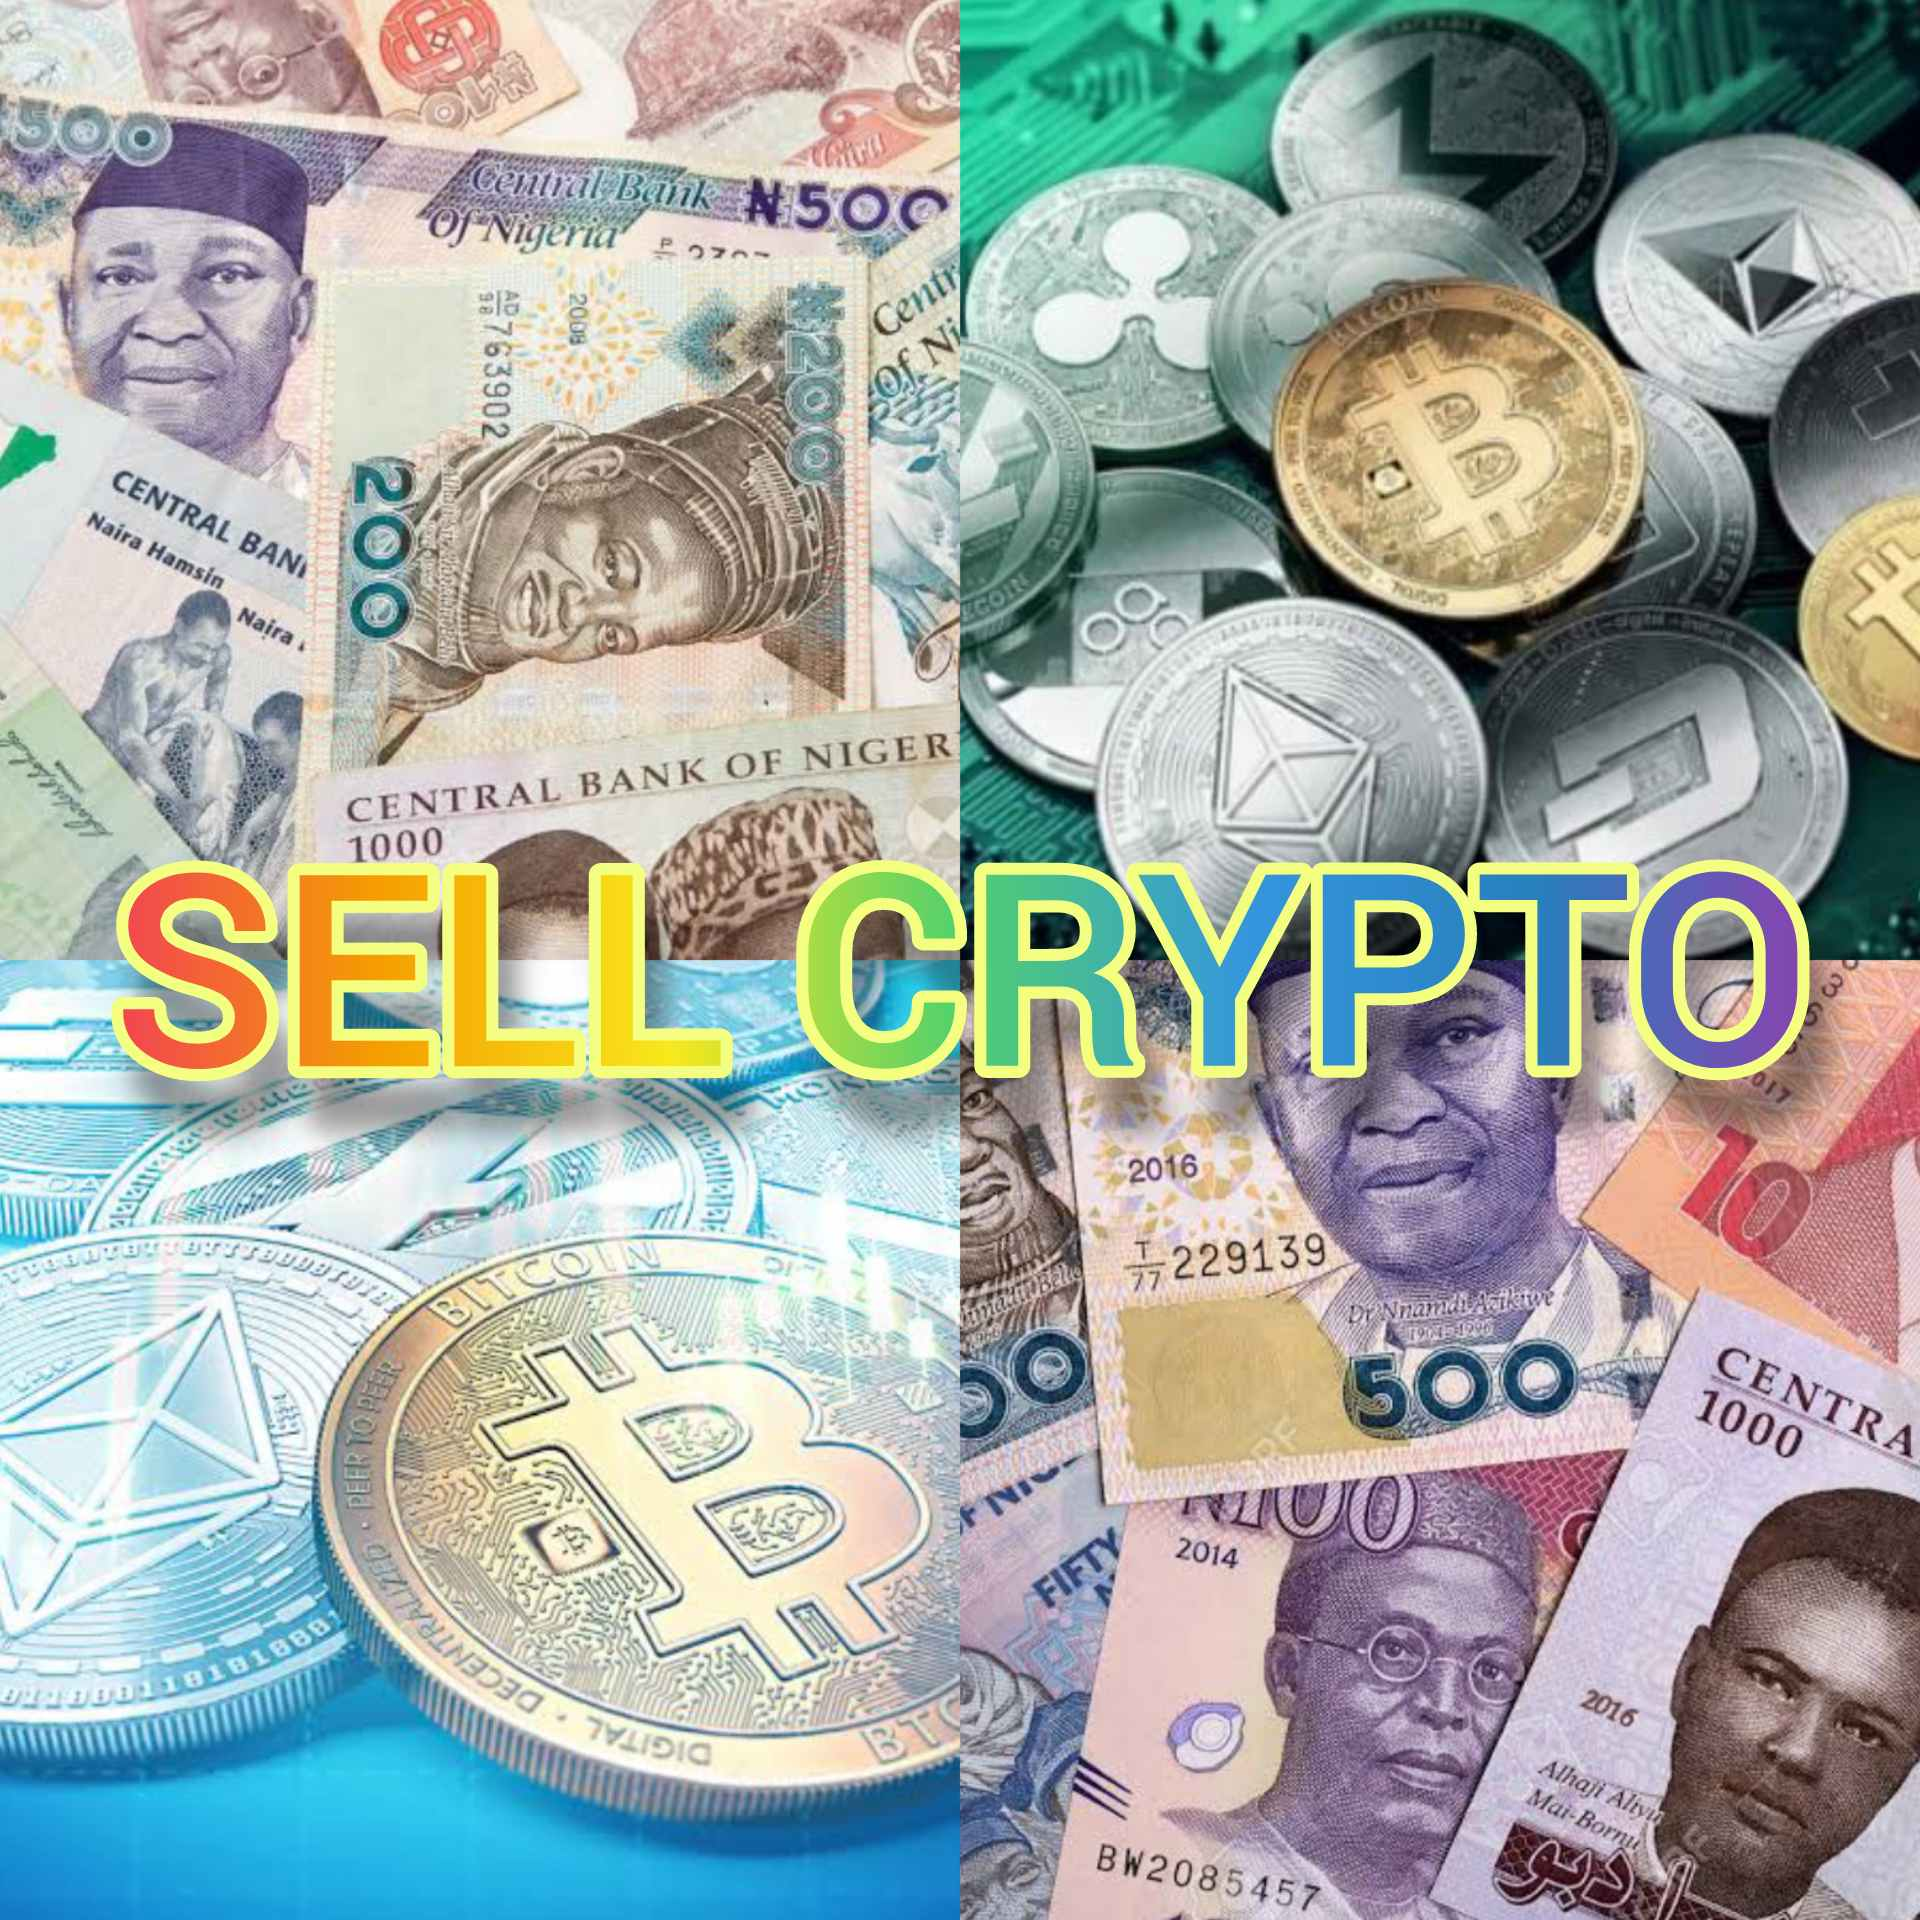 Sell Crypto in Nigeria